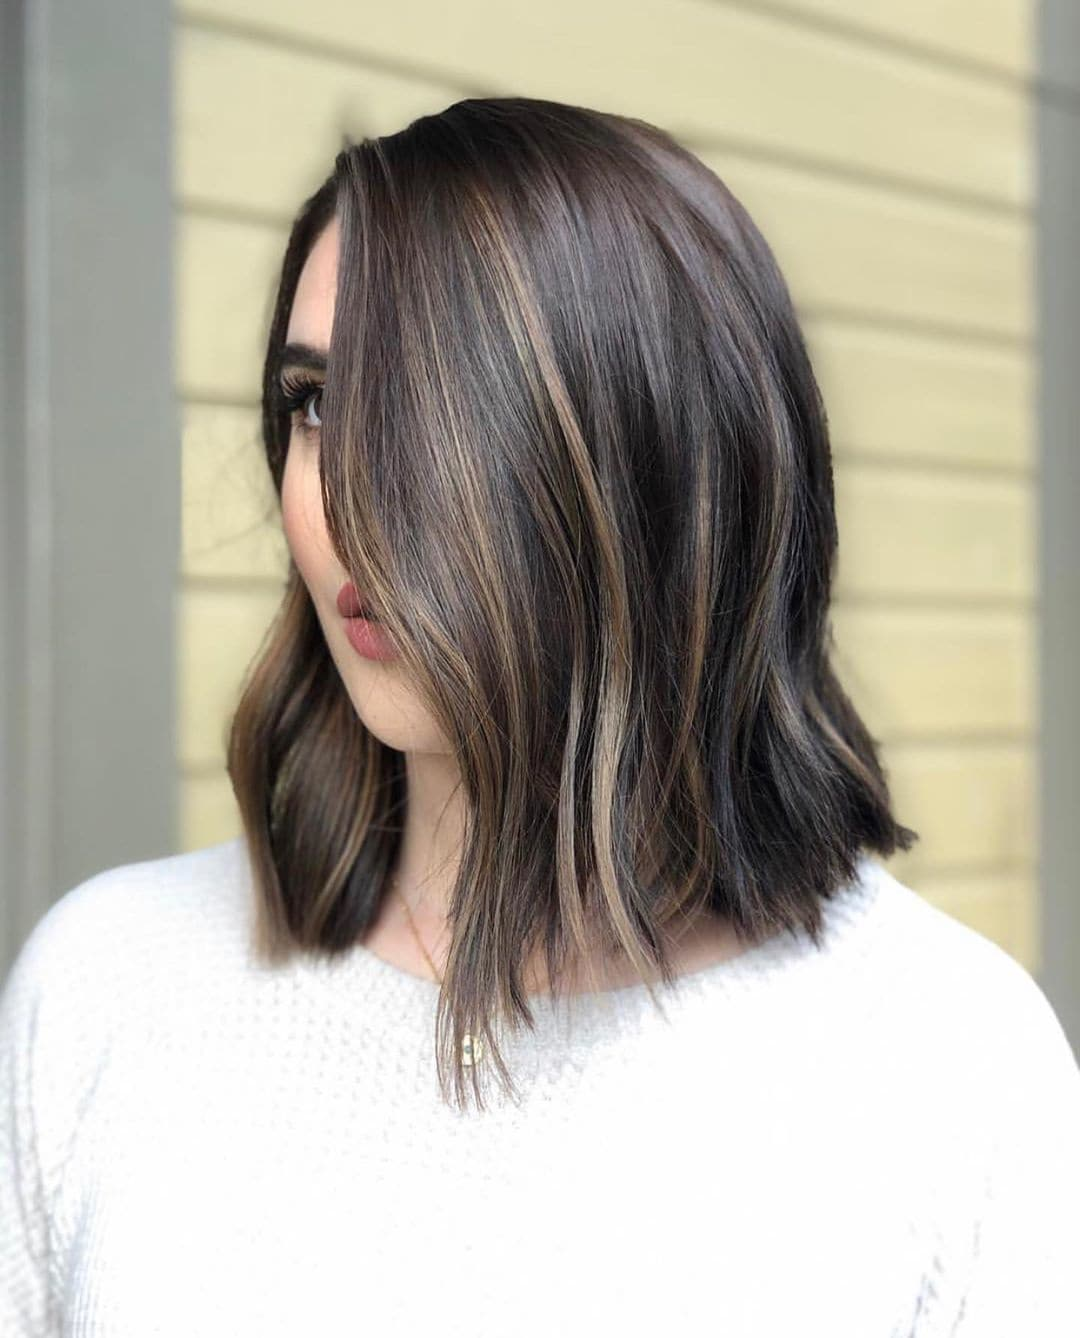 Woman with naturally straight dark hair styled into a subtle textured bob